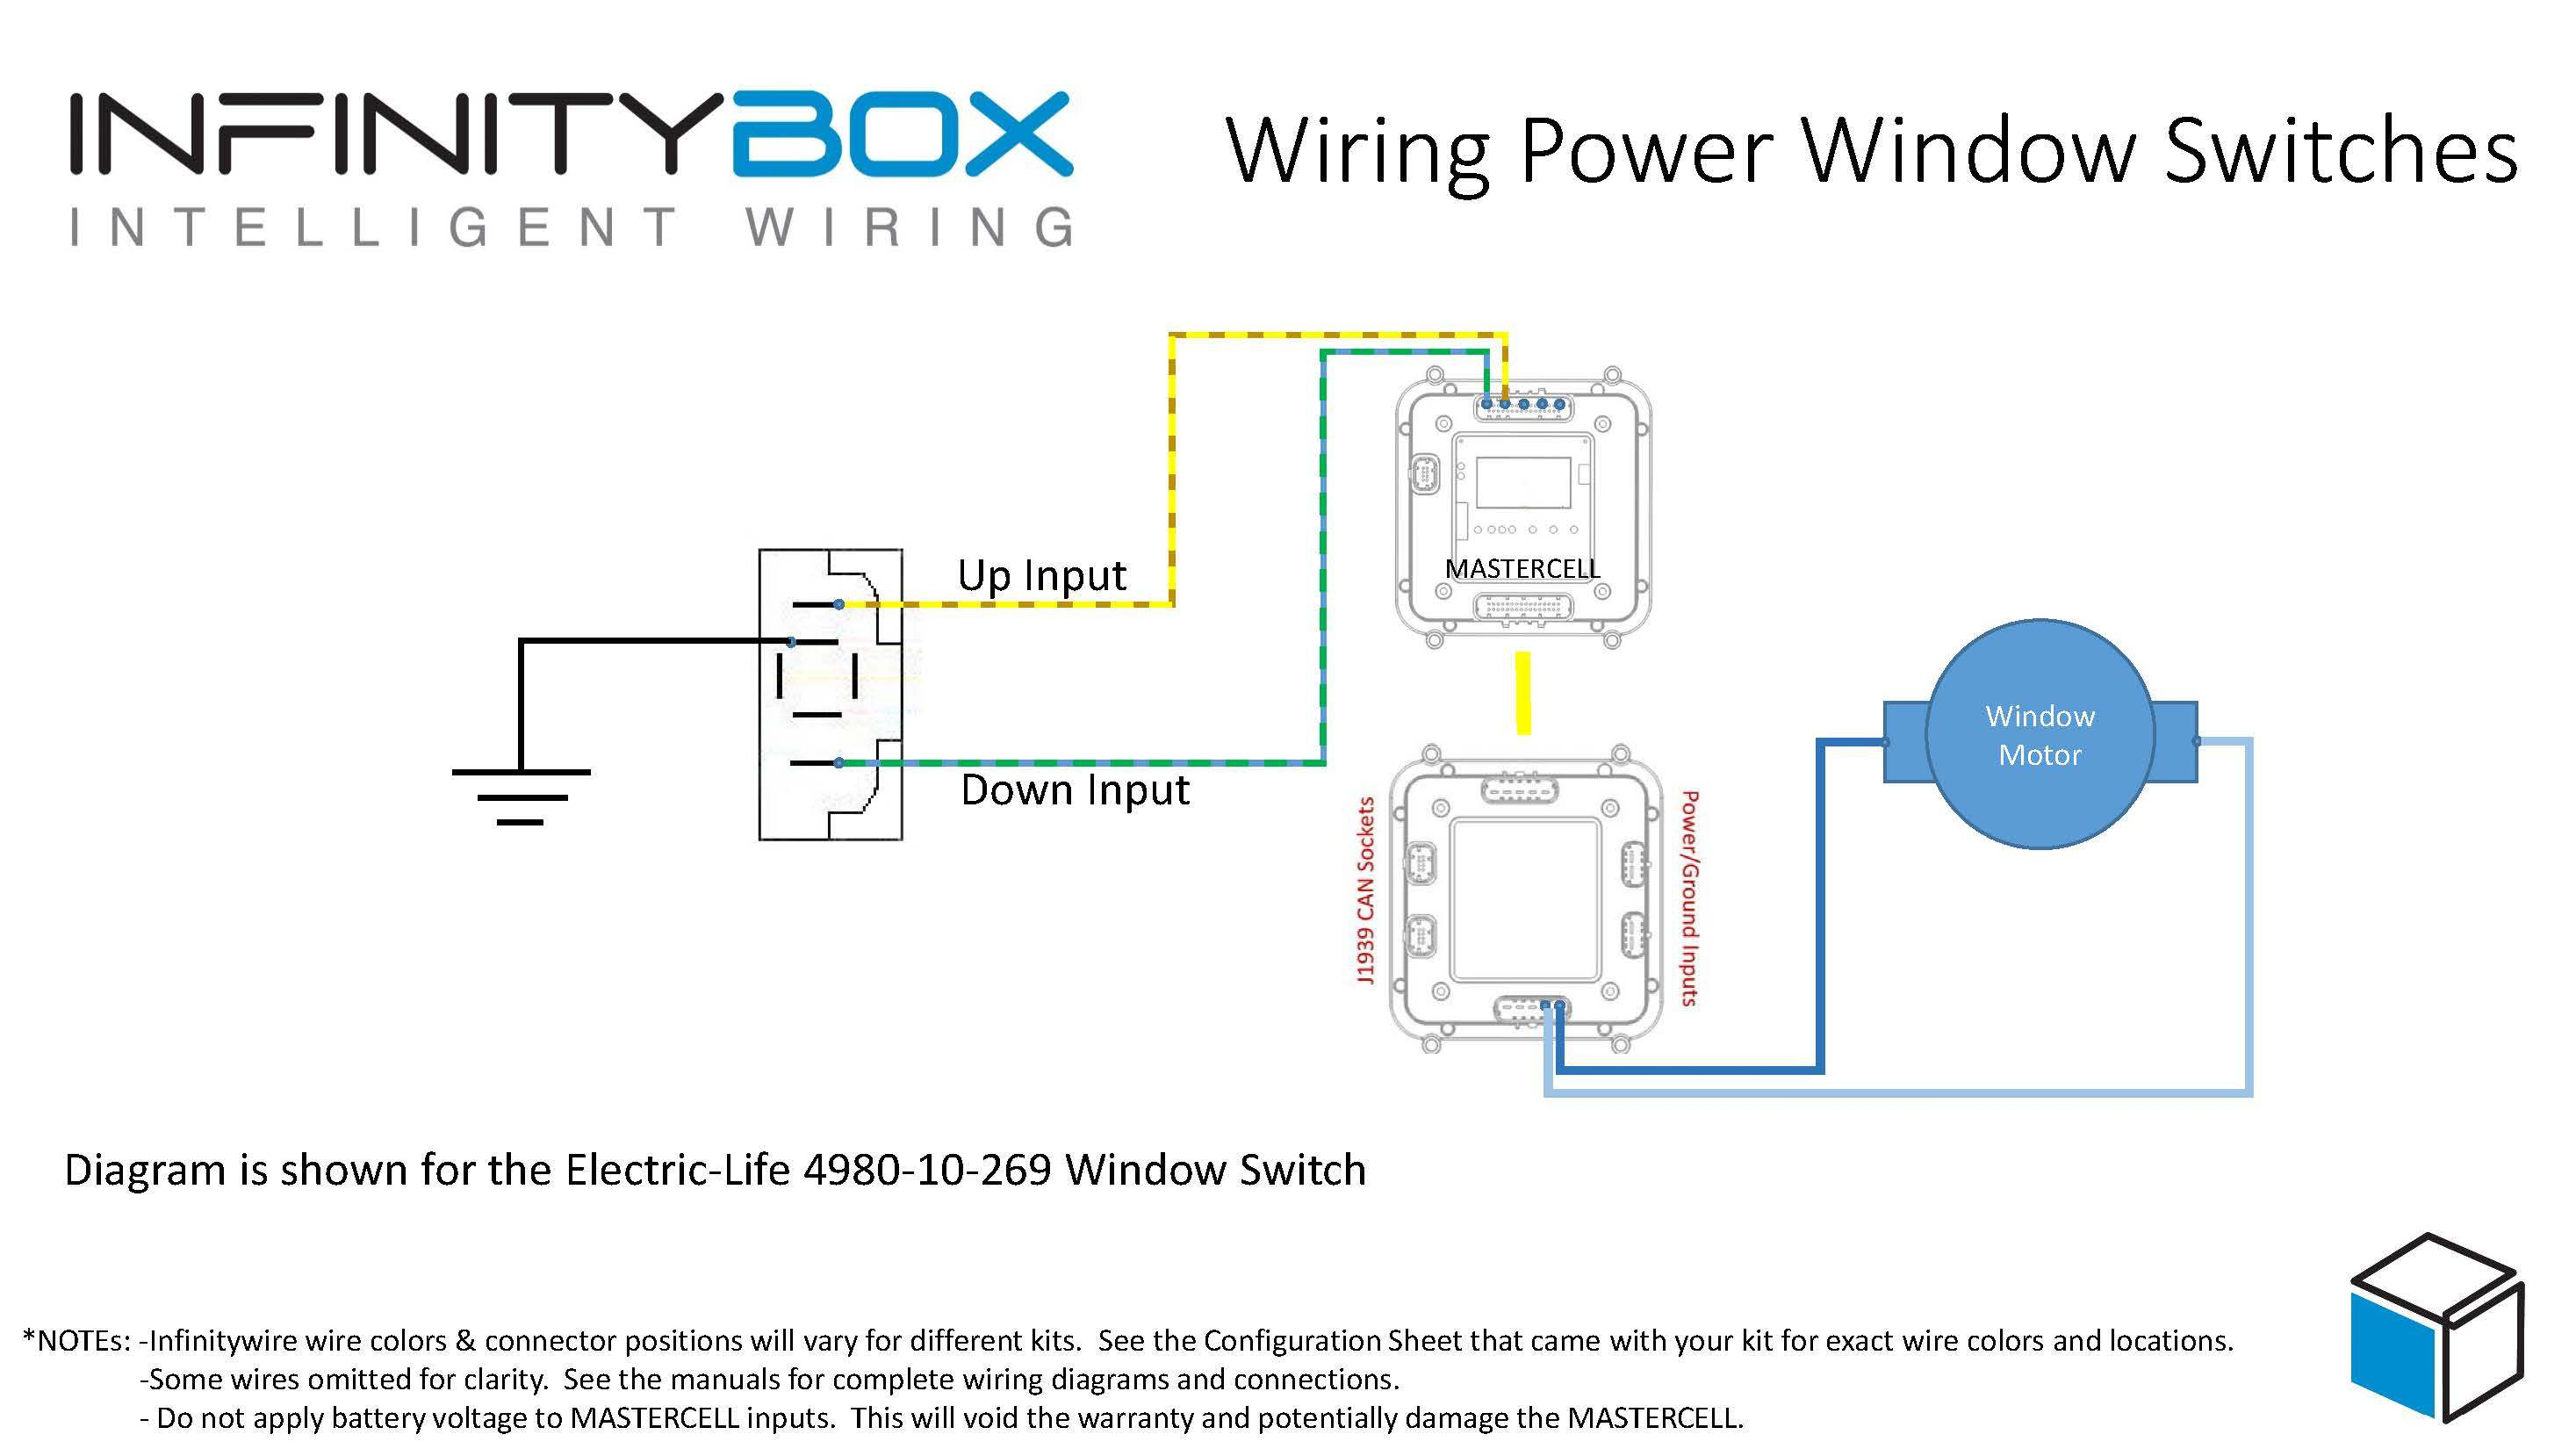 5 Wire Window Switch Diagram   Wiring Library - 5 Pin Power Window Switch Wiring Diagram